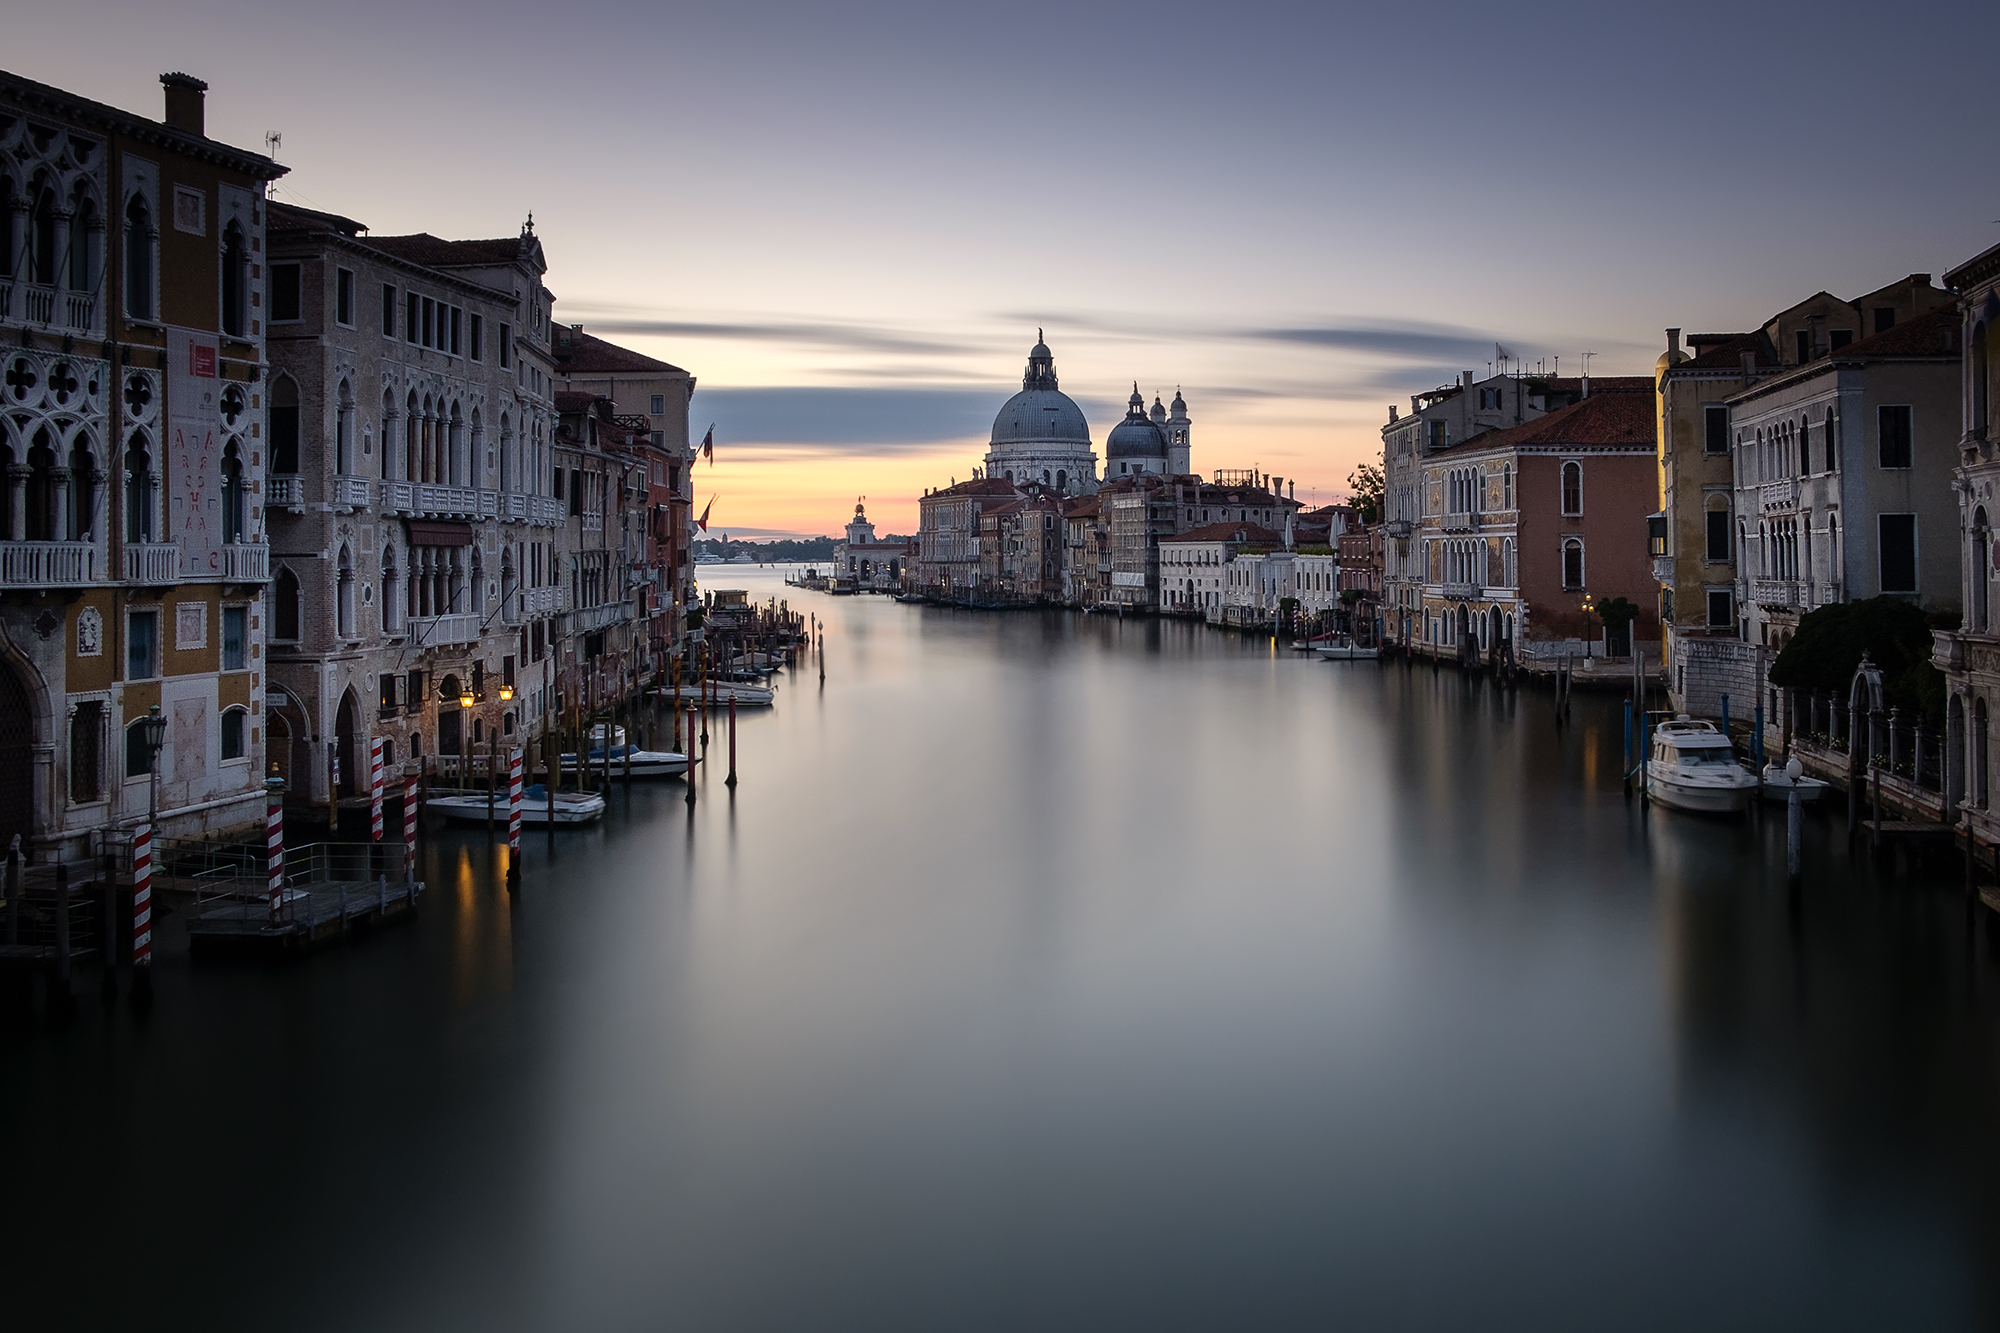 Cityscape long exposure photo of The Grand Canal, Venice, Italy by Trevor Sherwin